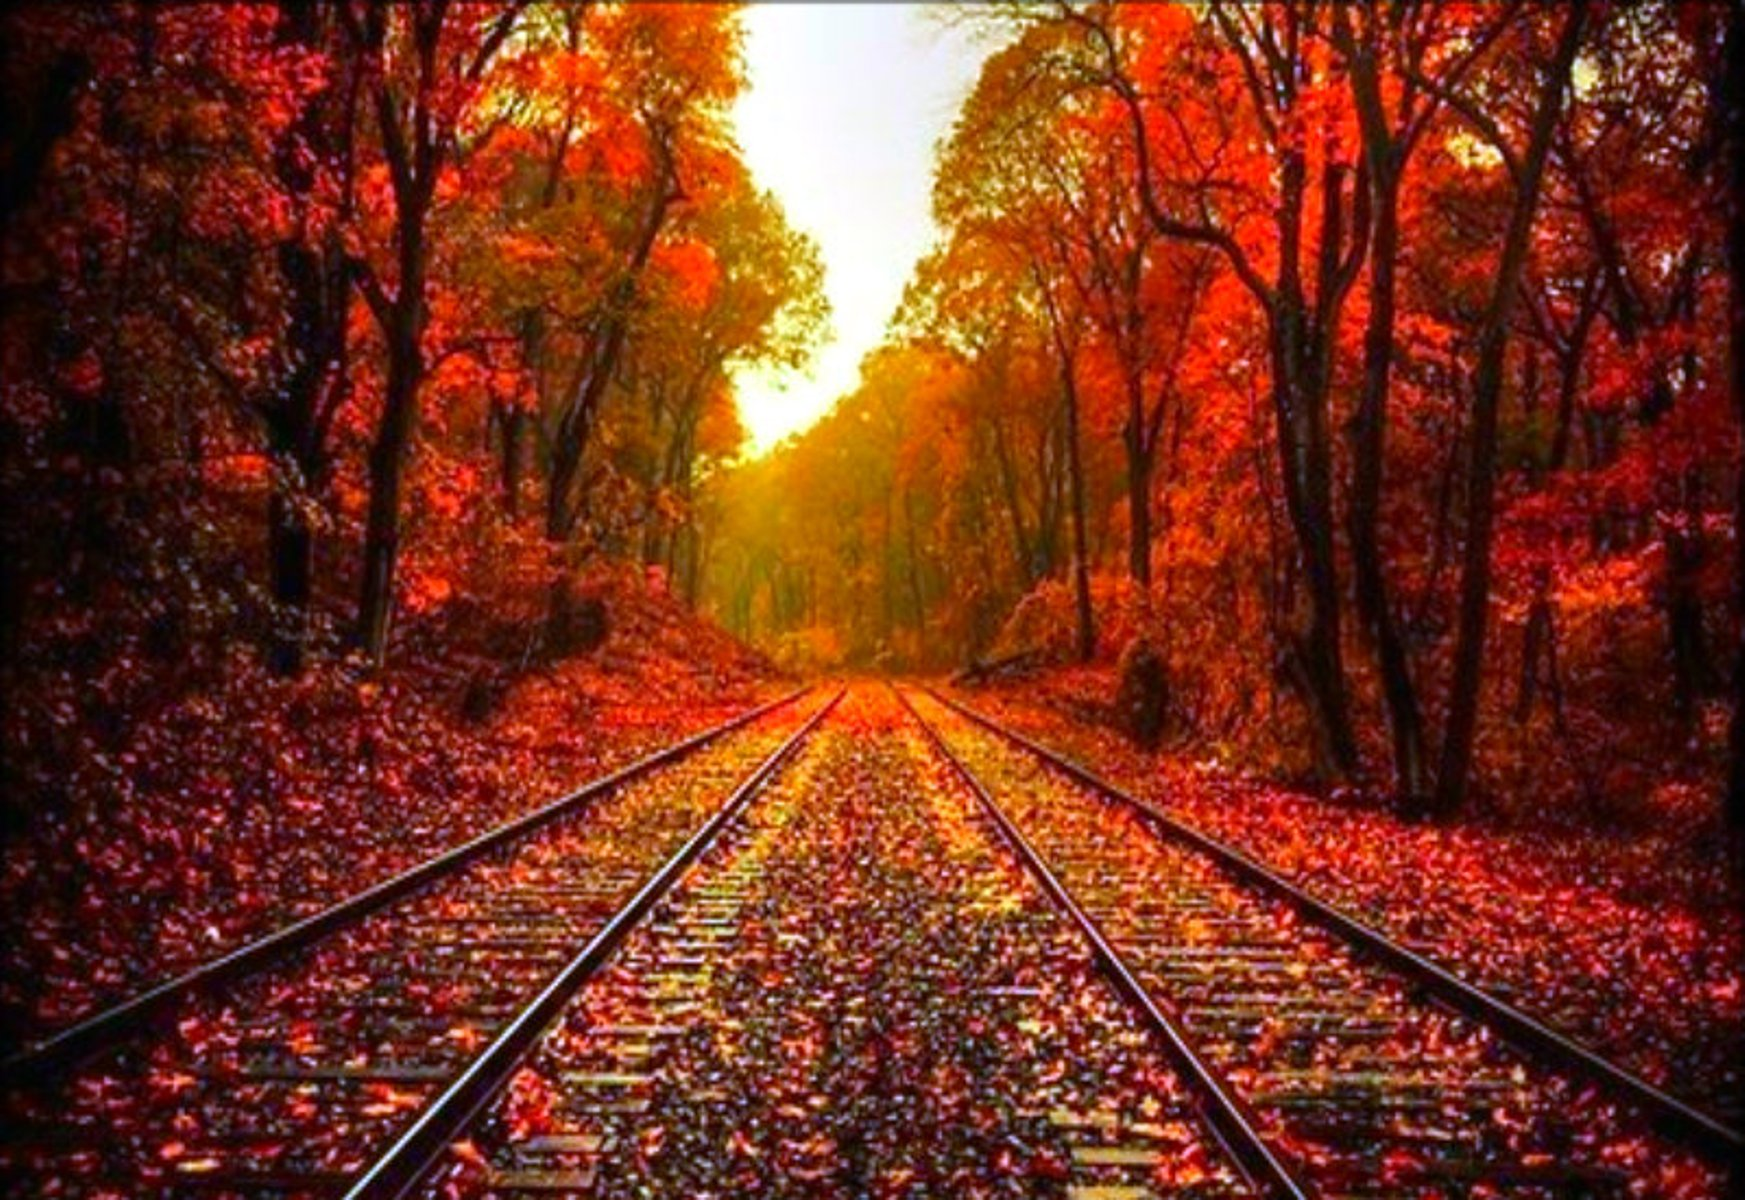 Beautiful Fall Pictures Wallpaper - WallpaperSafari